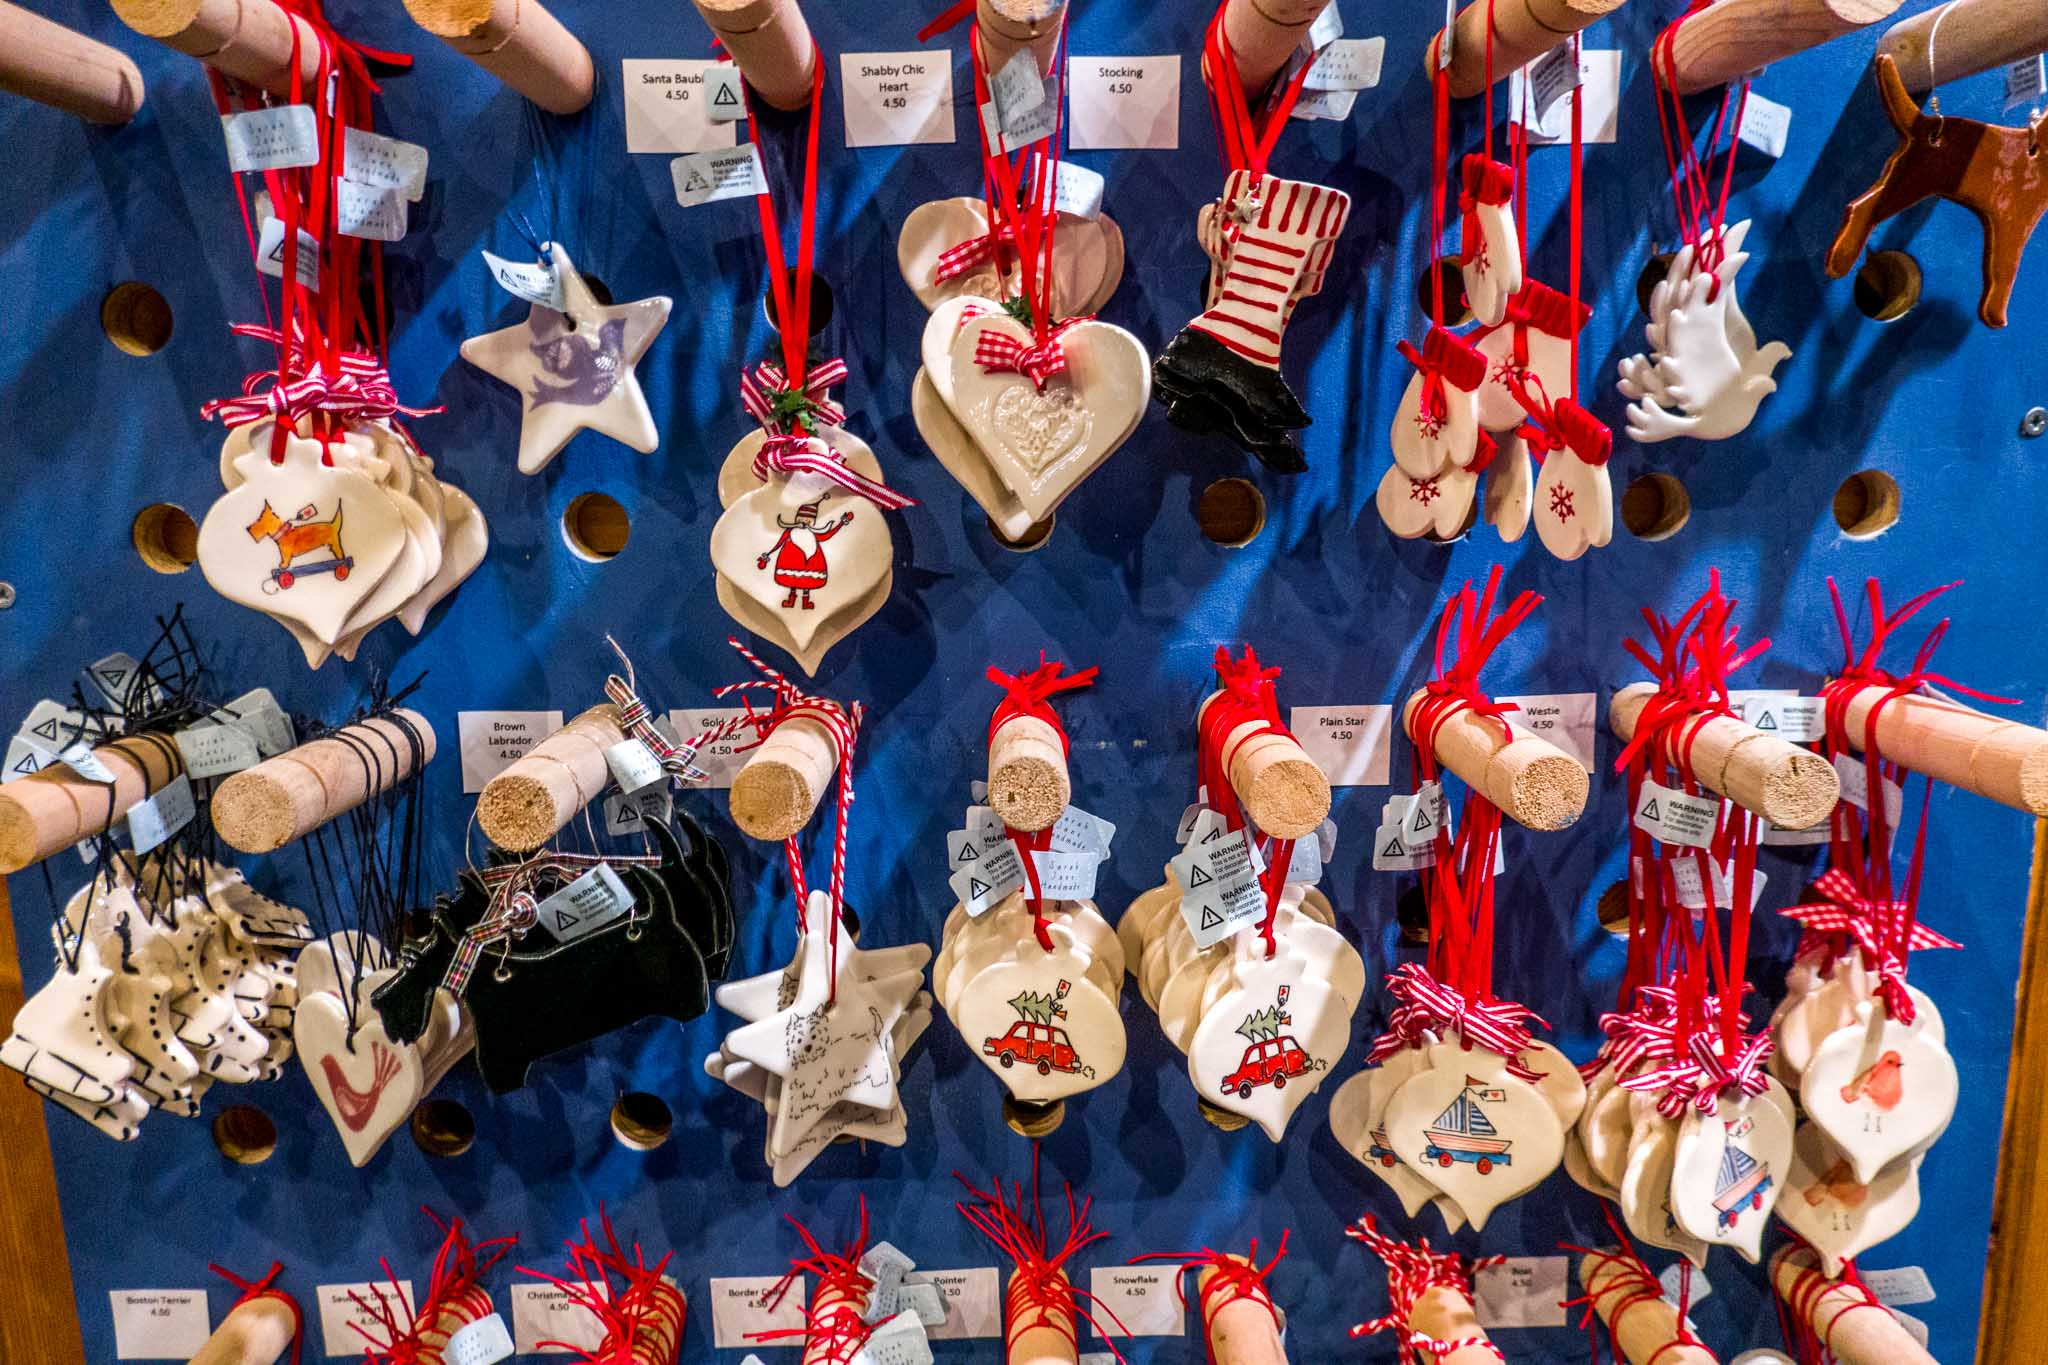 Handmade ornaments for sale at the market